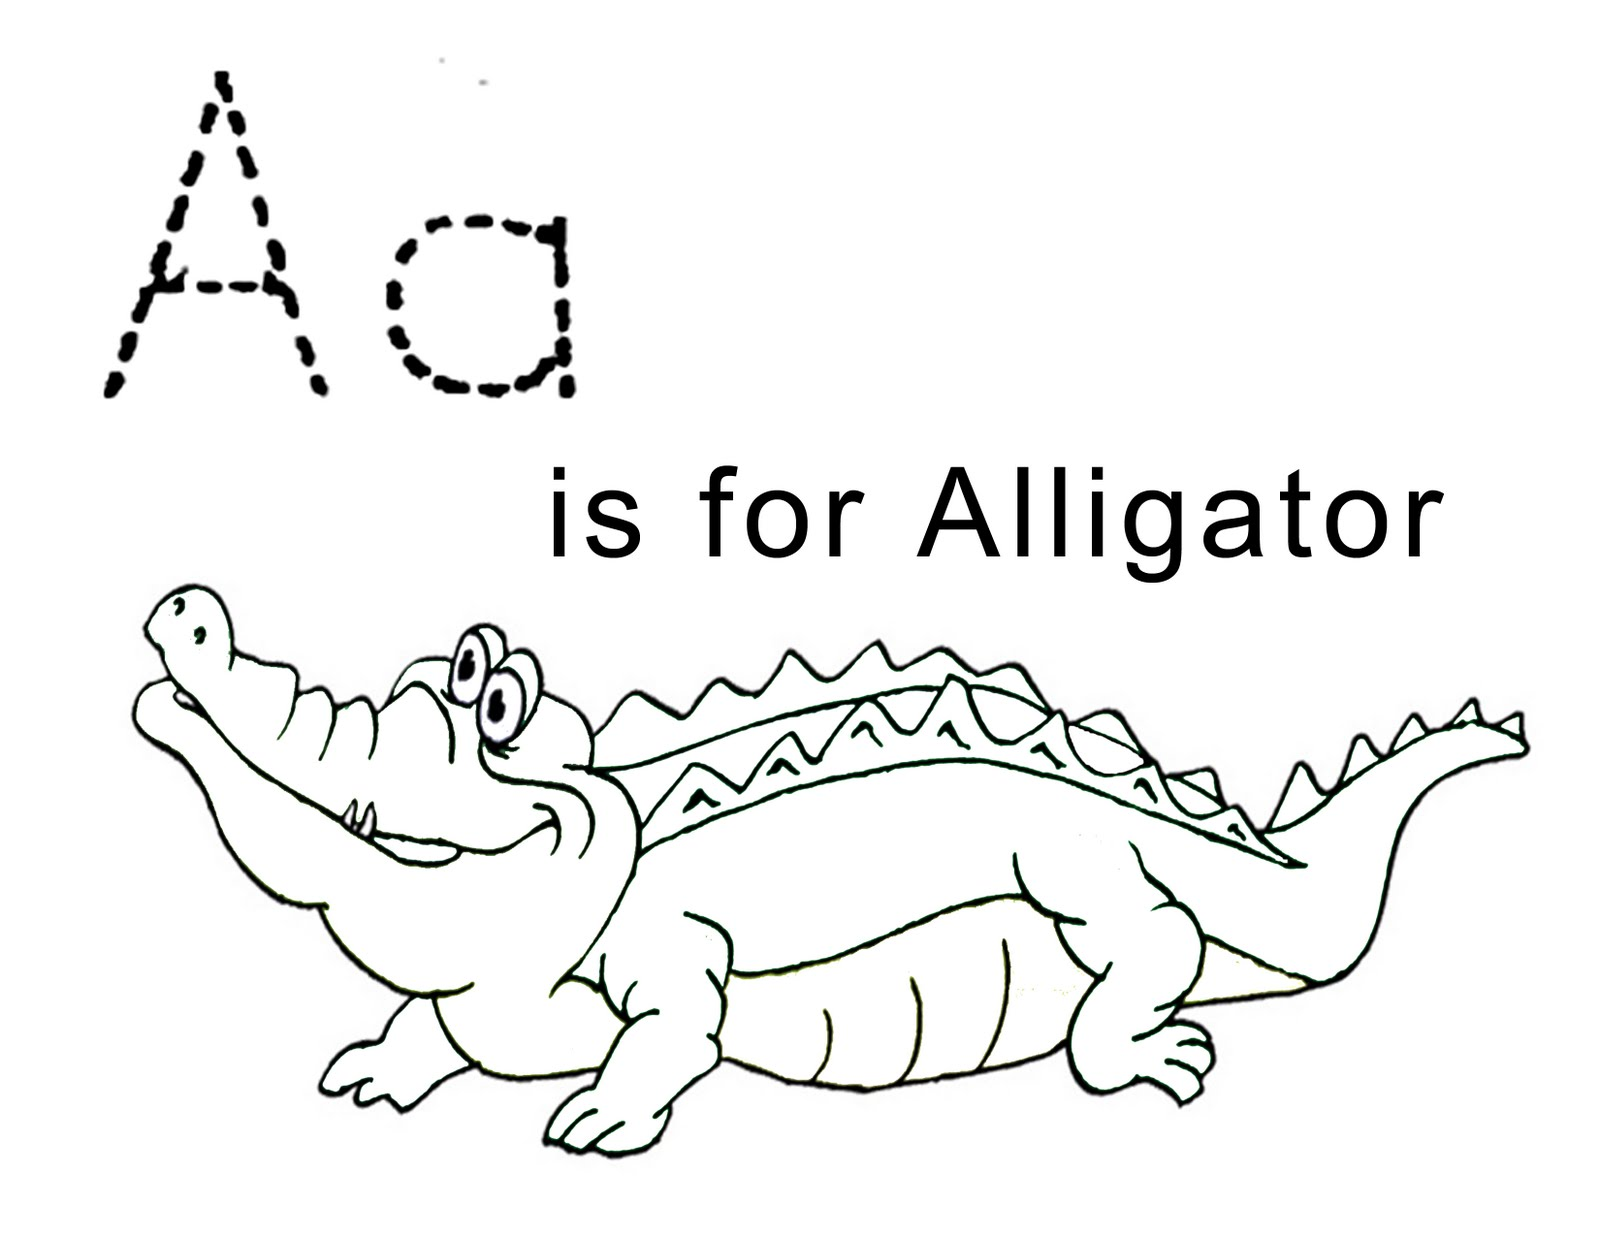 alligator coloring page - Alligator Coloring Page